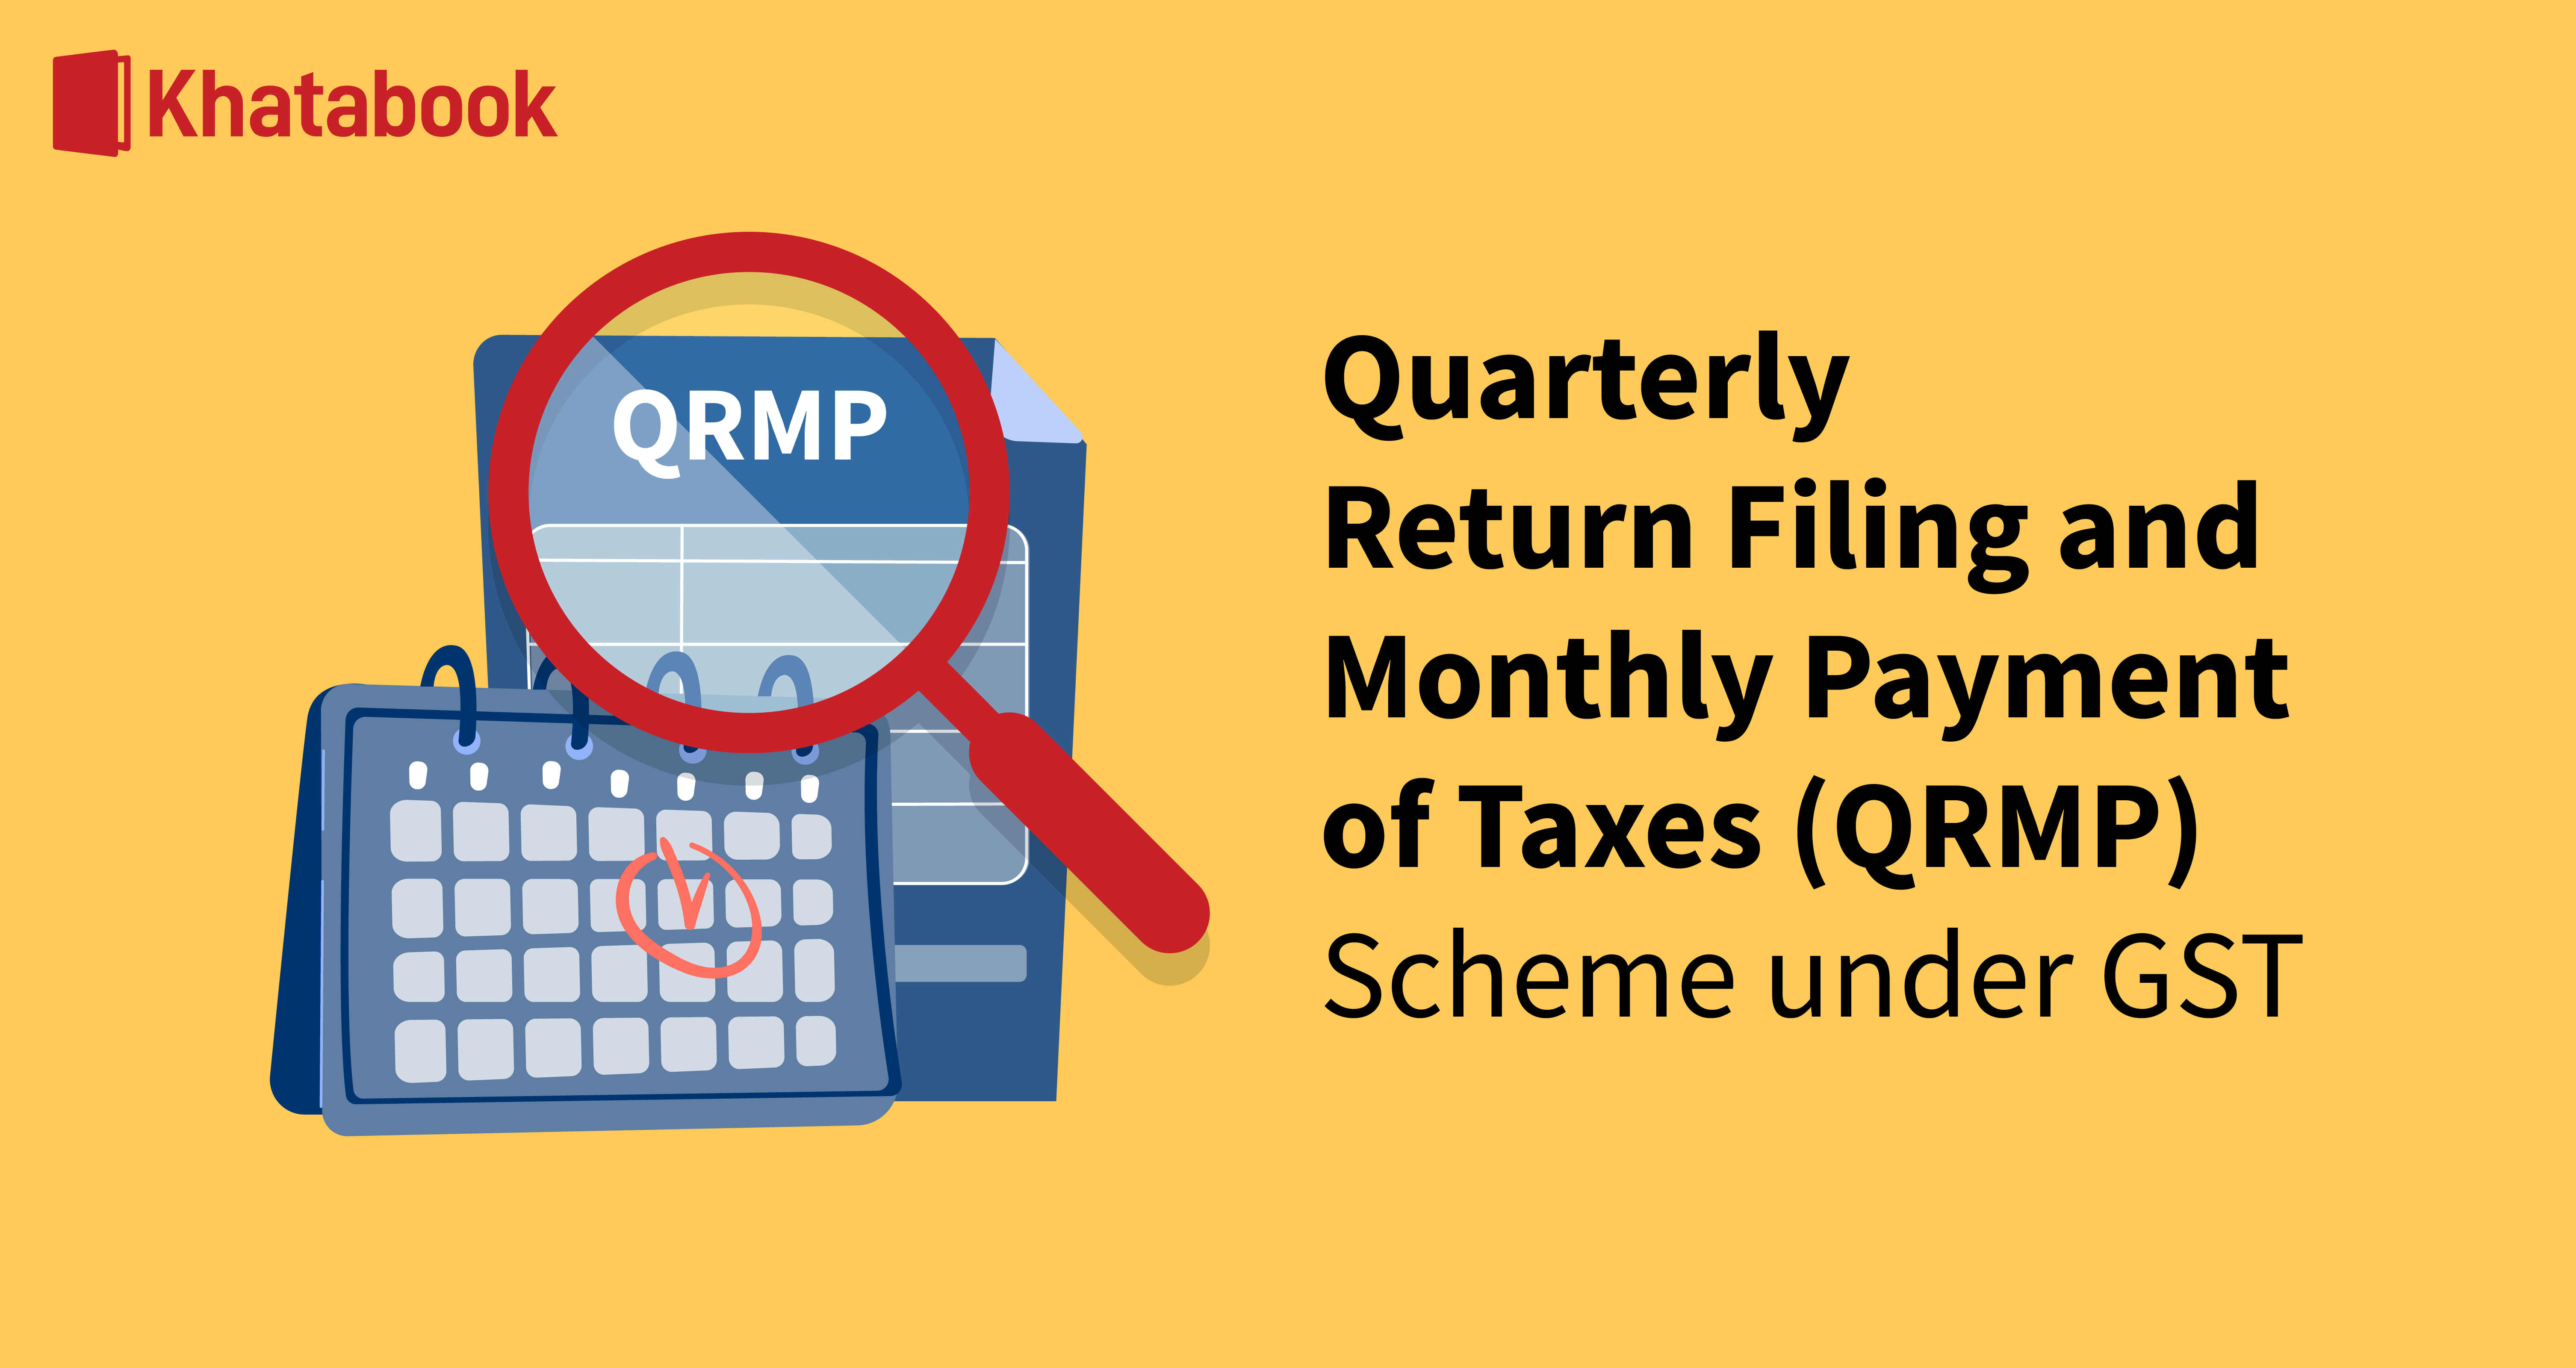 GST: Quarterly Return Filing and Monthly Payment of Taxes (QRMP)